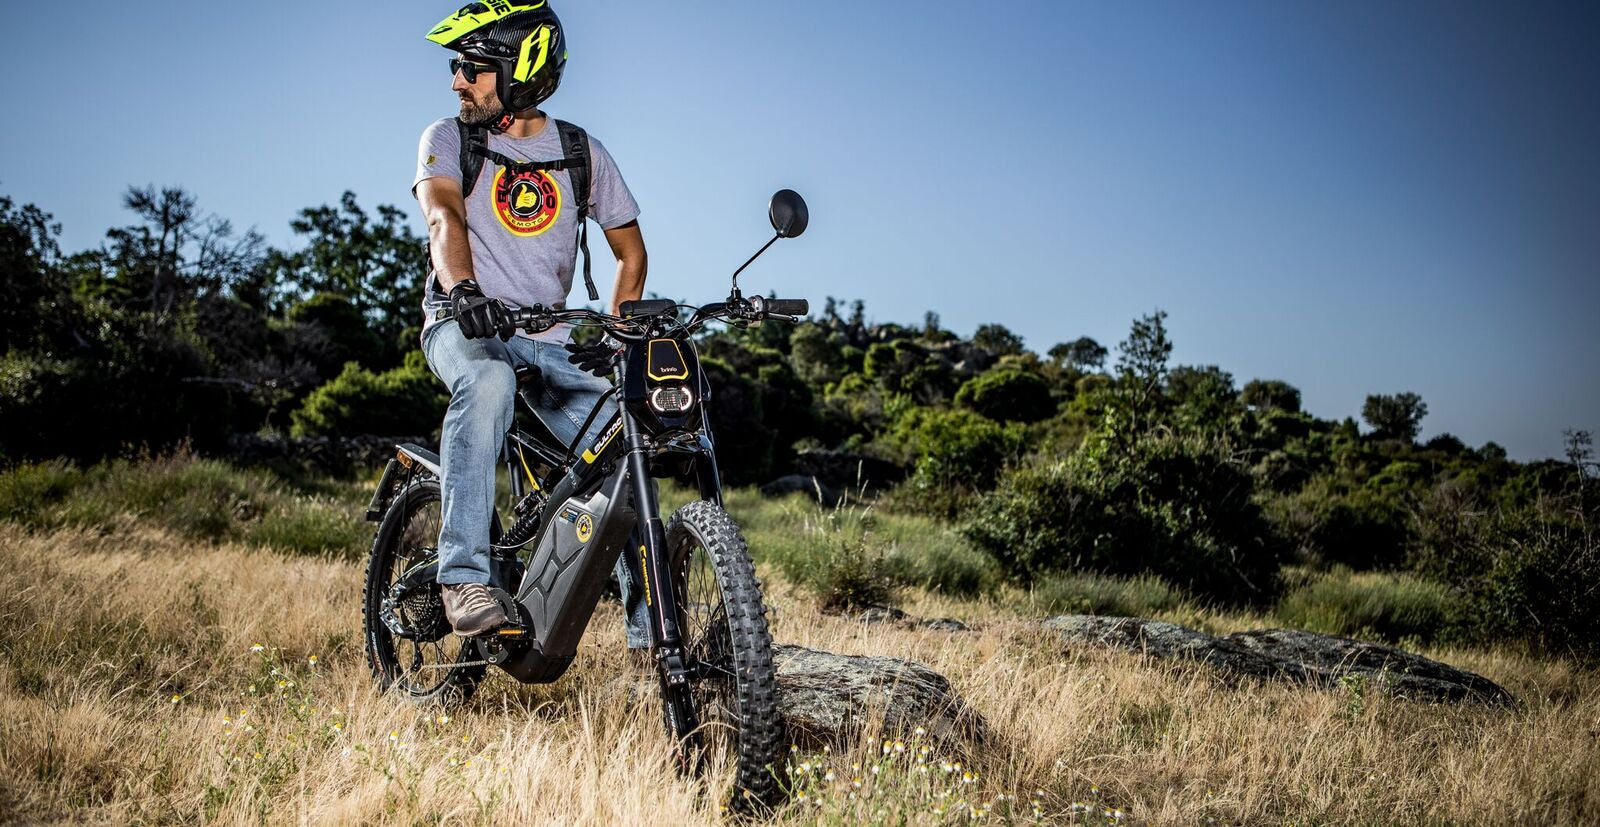 Bultaco Brinco C Restyle Day Time Shoot 2